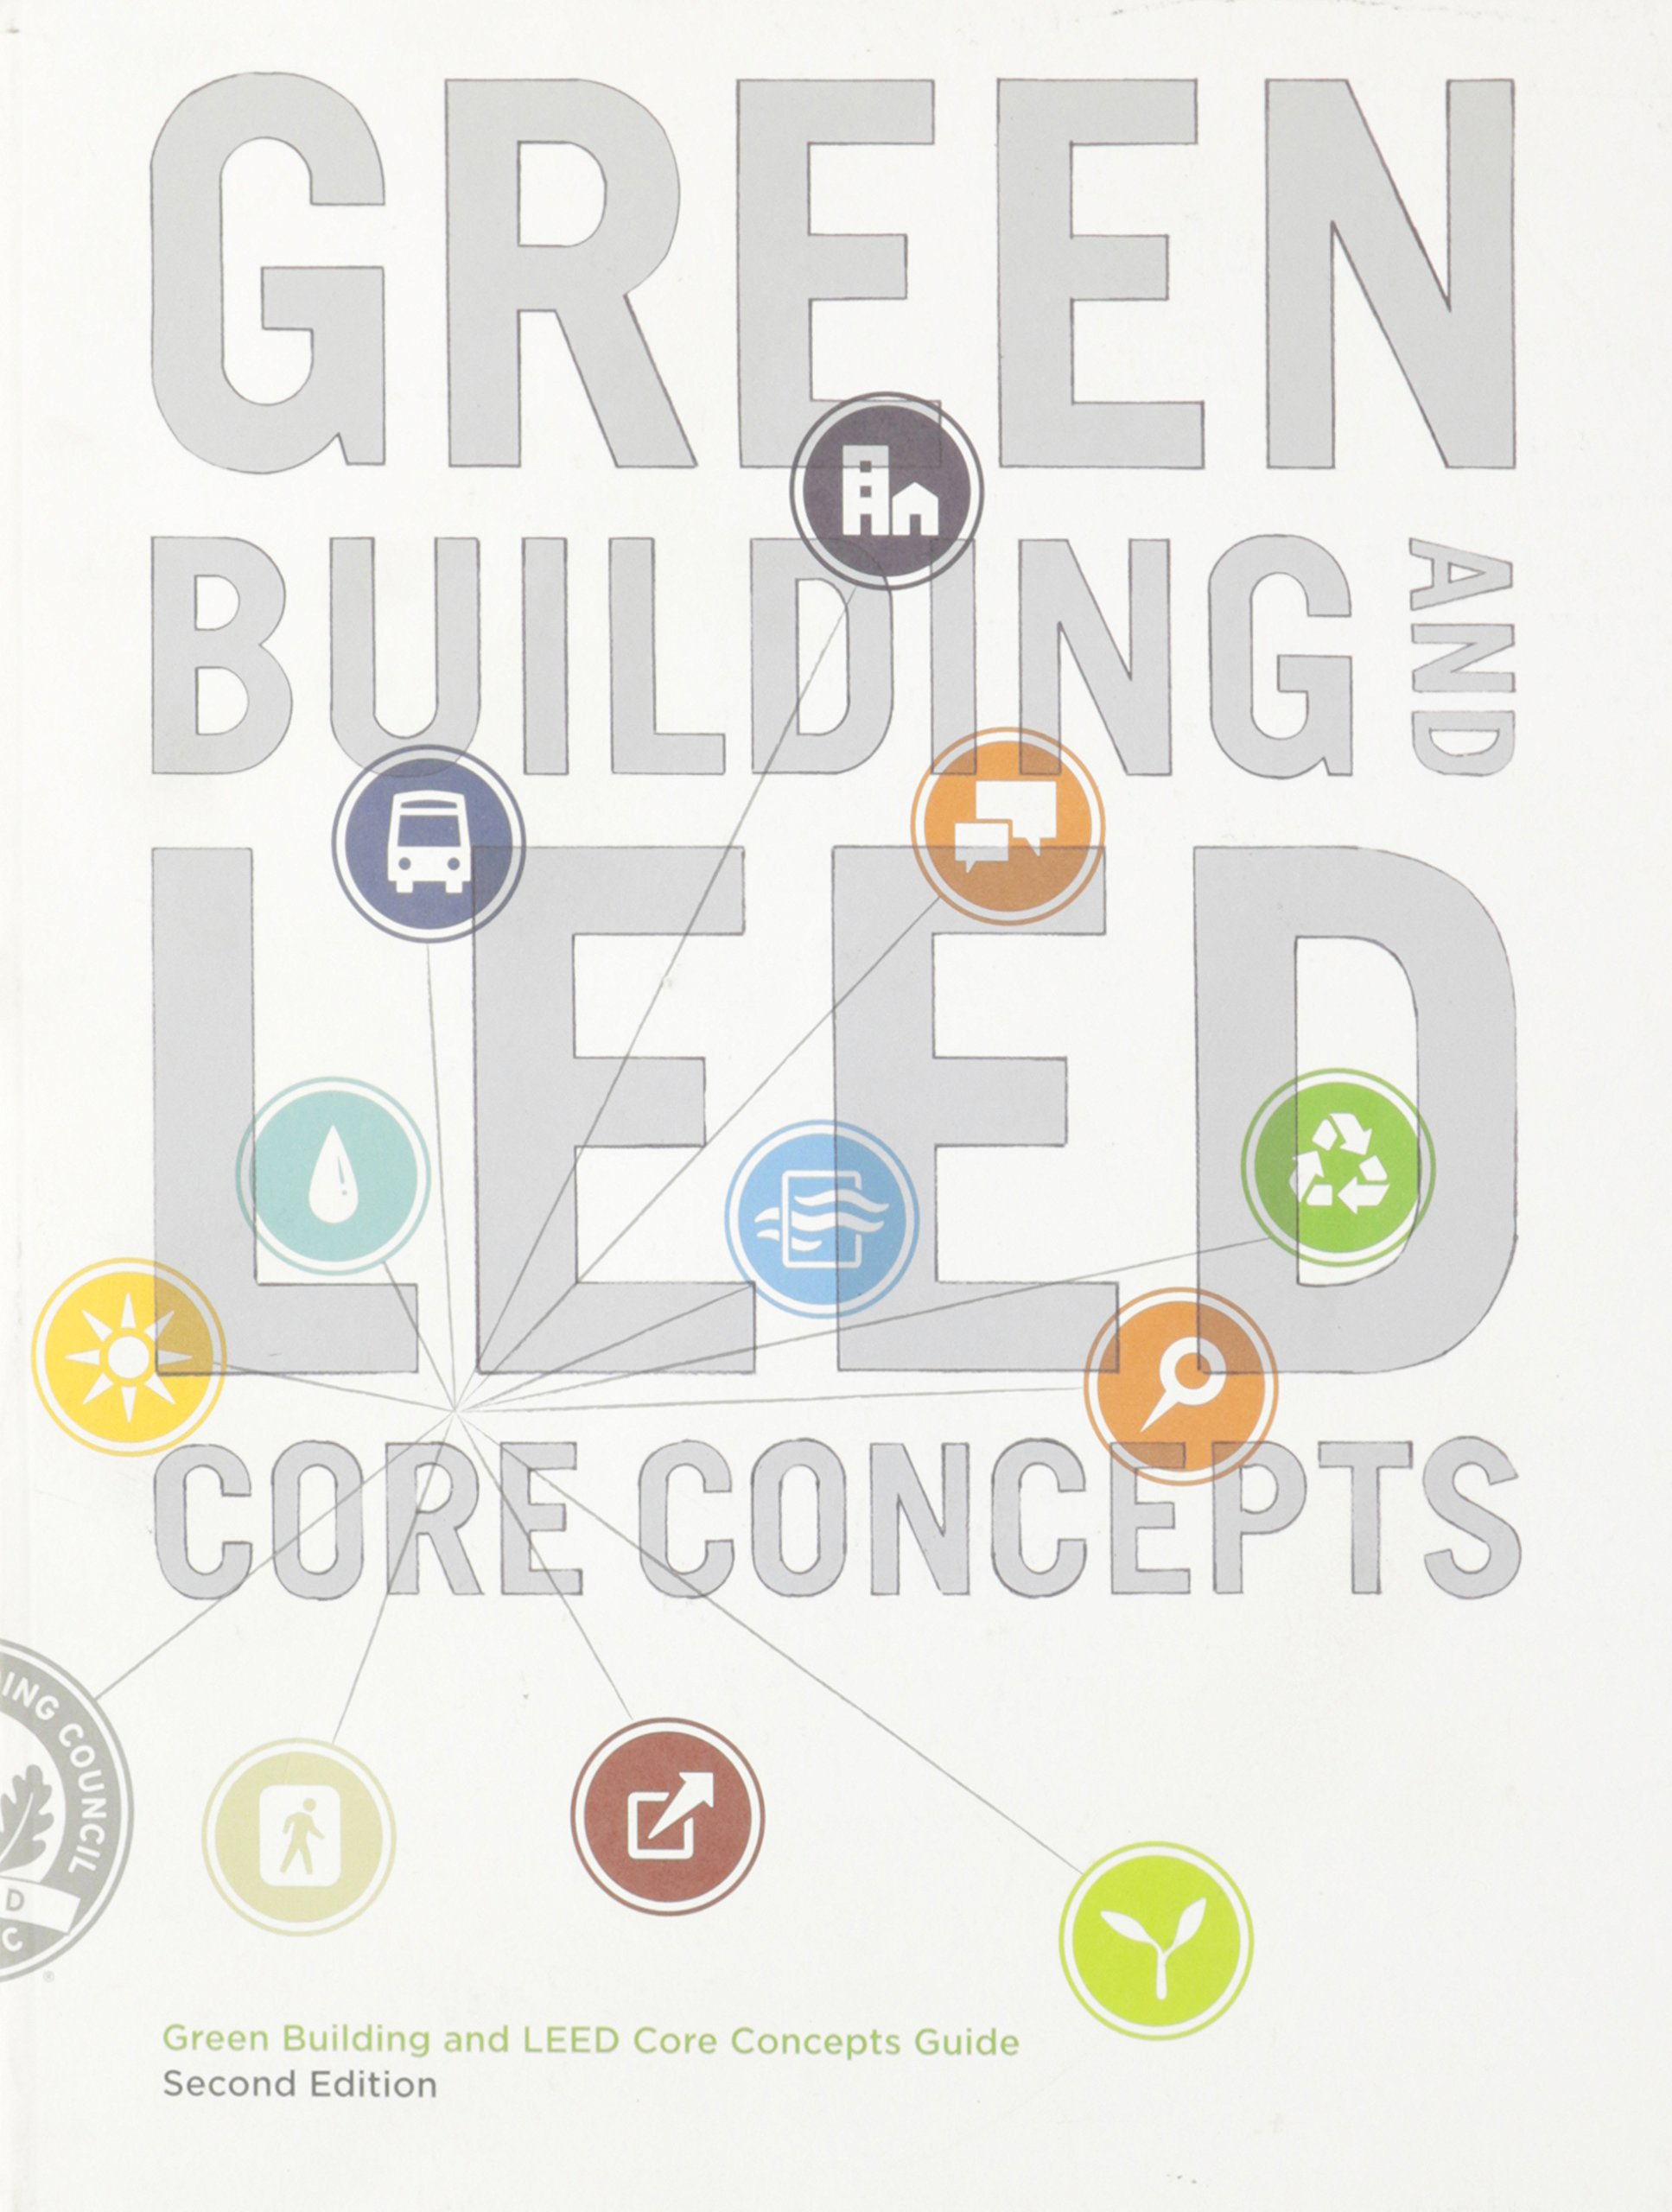 Leed core concepts guide 3rd edition portugese null leed core concepts guide 3rd edition portugese null 9781932444506 amazon books xflitez Images